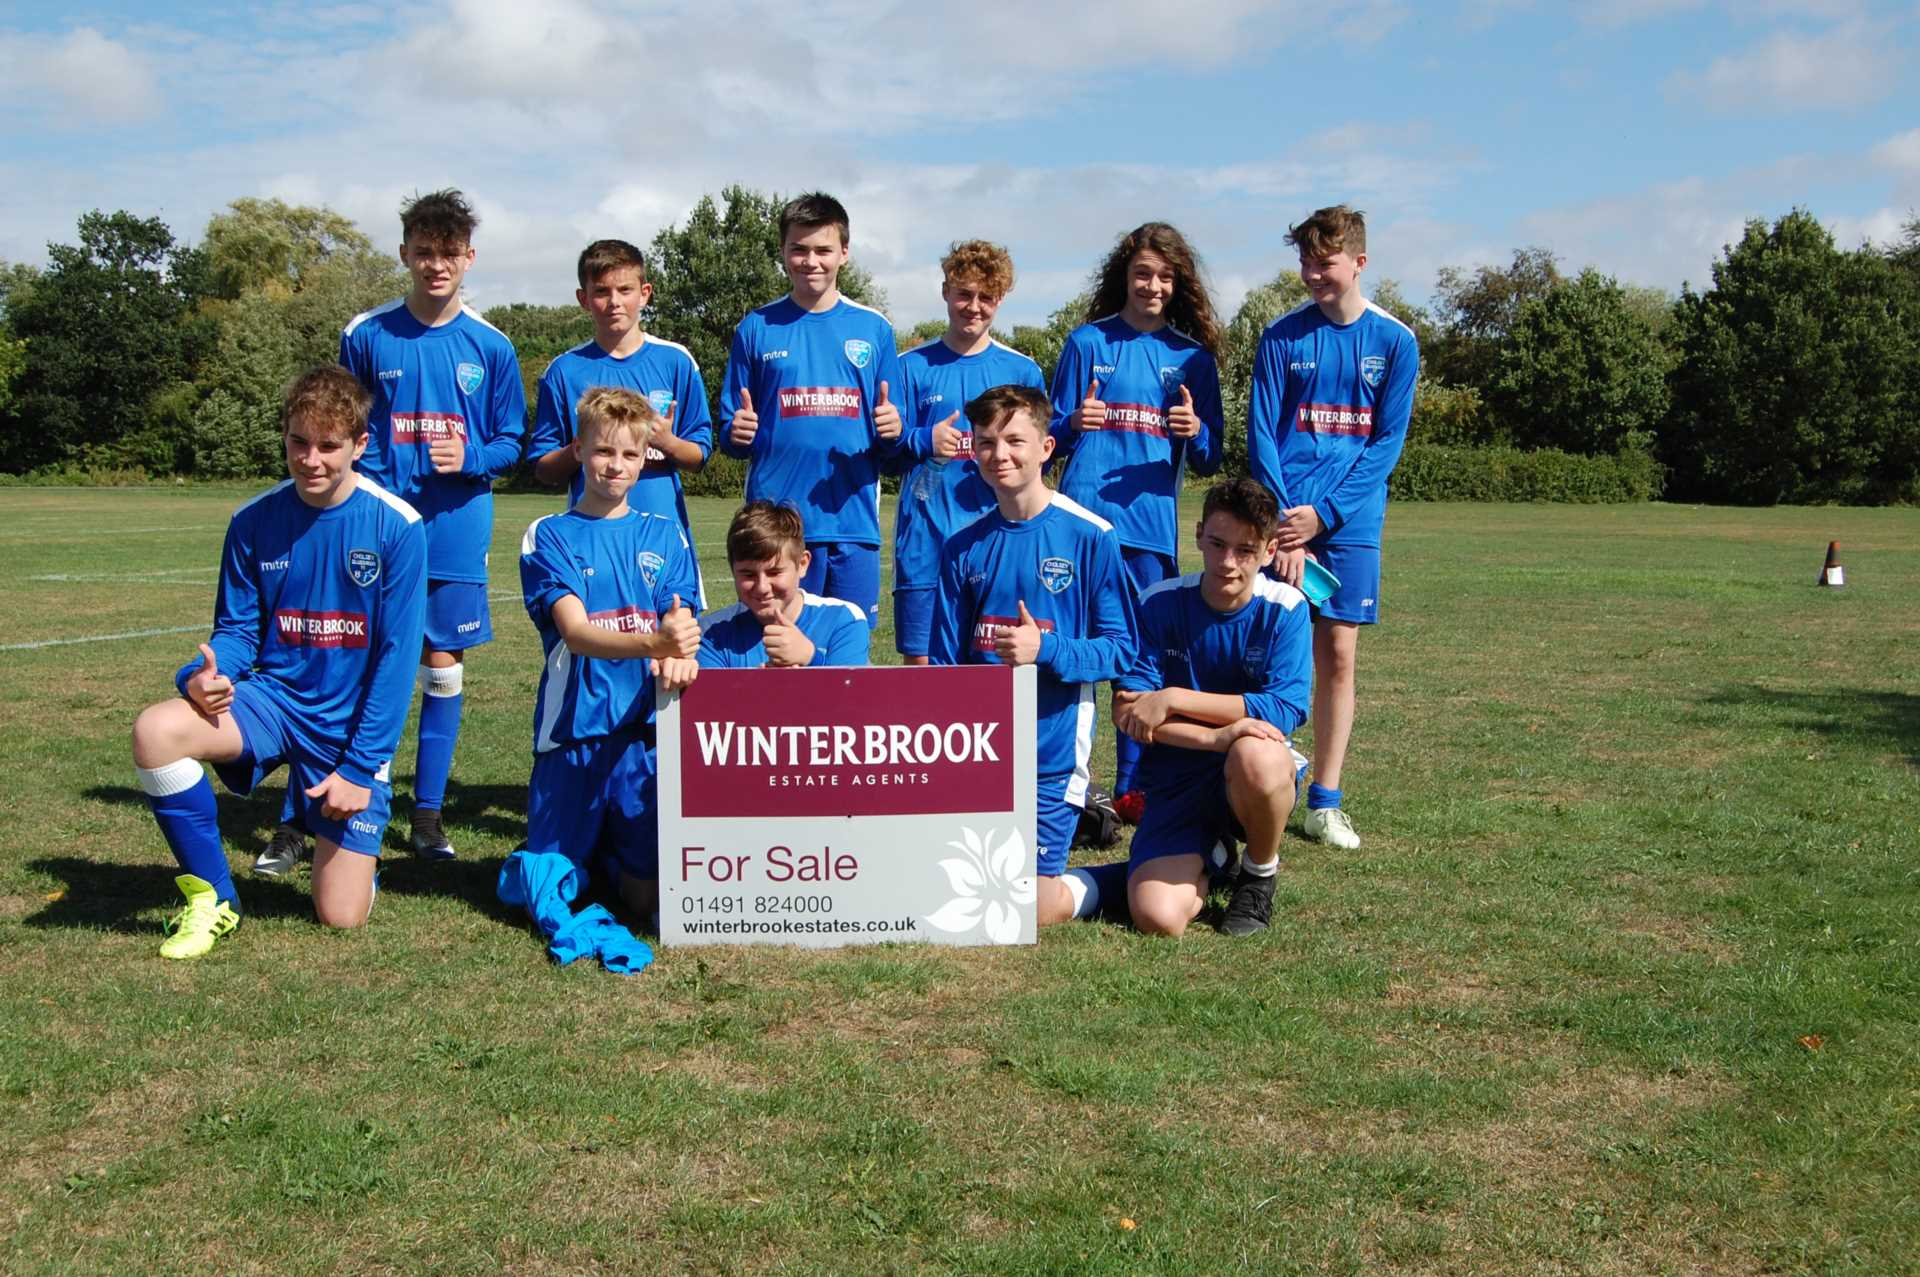 Winterbrook continuing support for the Cholsey Bluebirds under 13`s